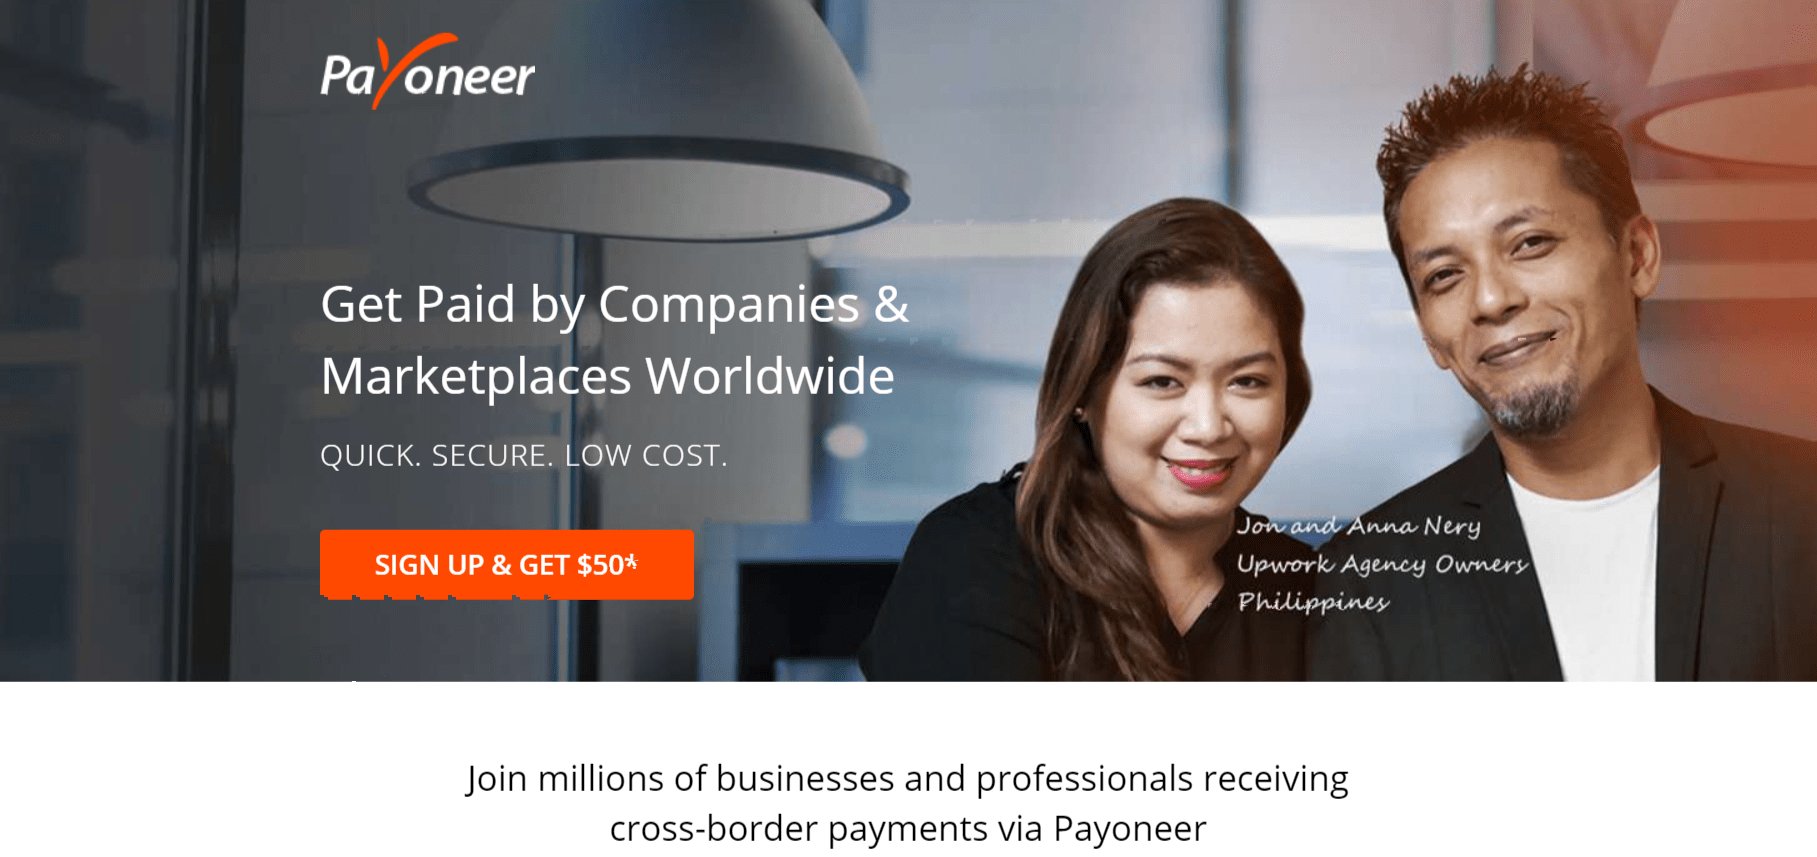 Payoneer Overview- Payoneer Review